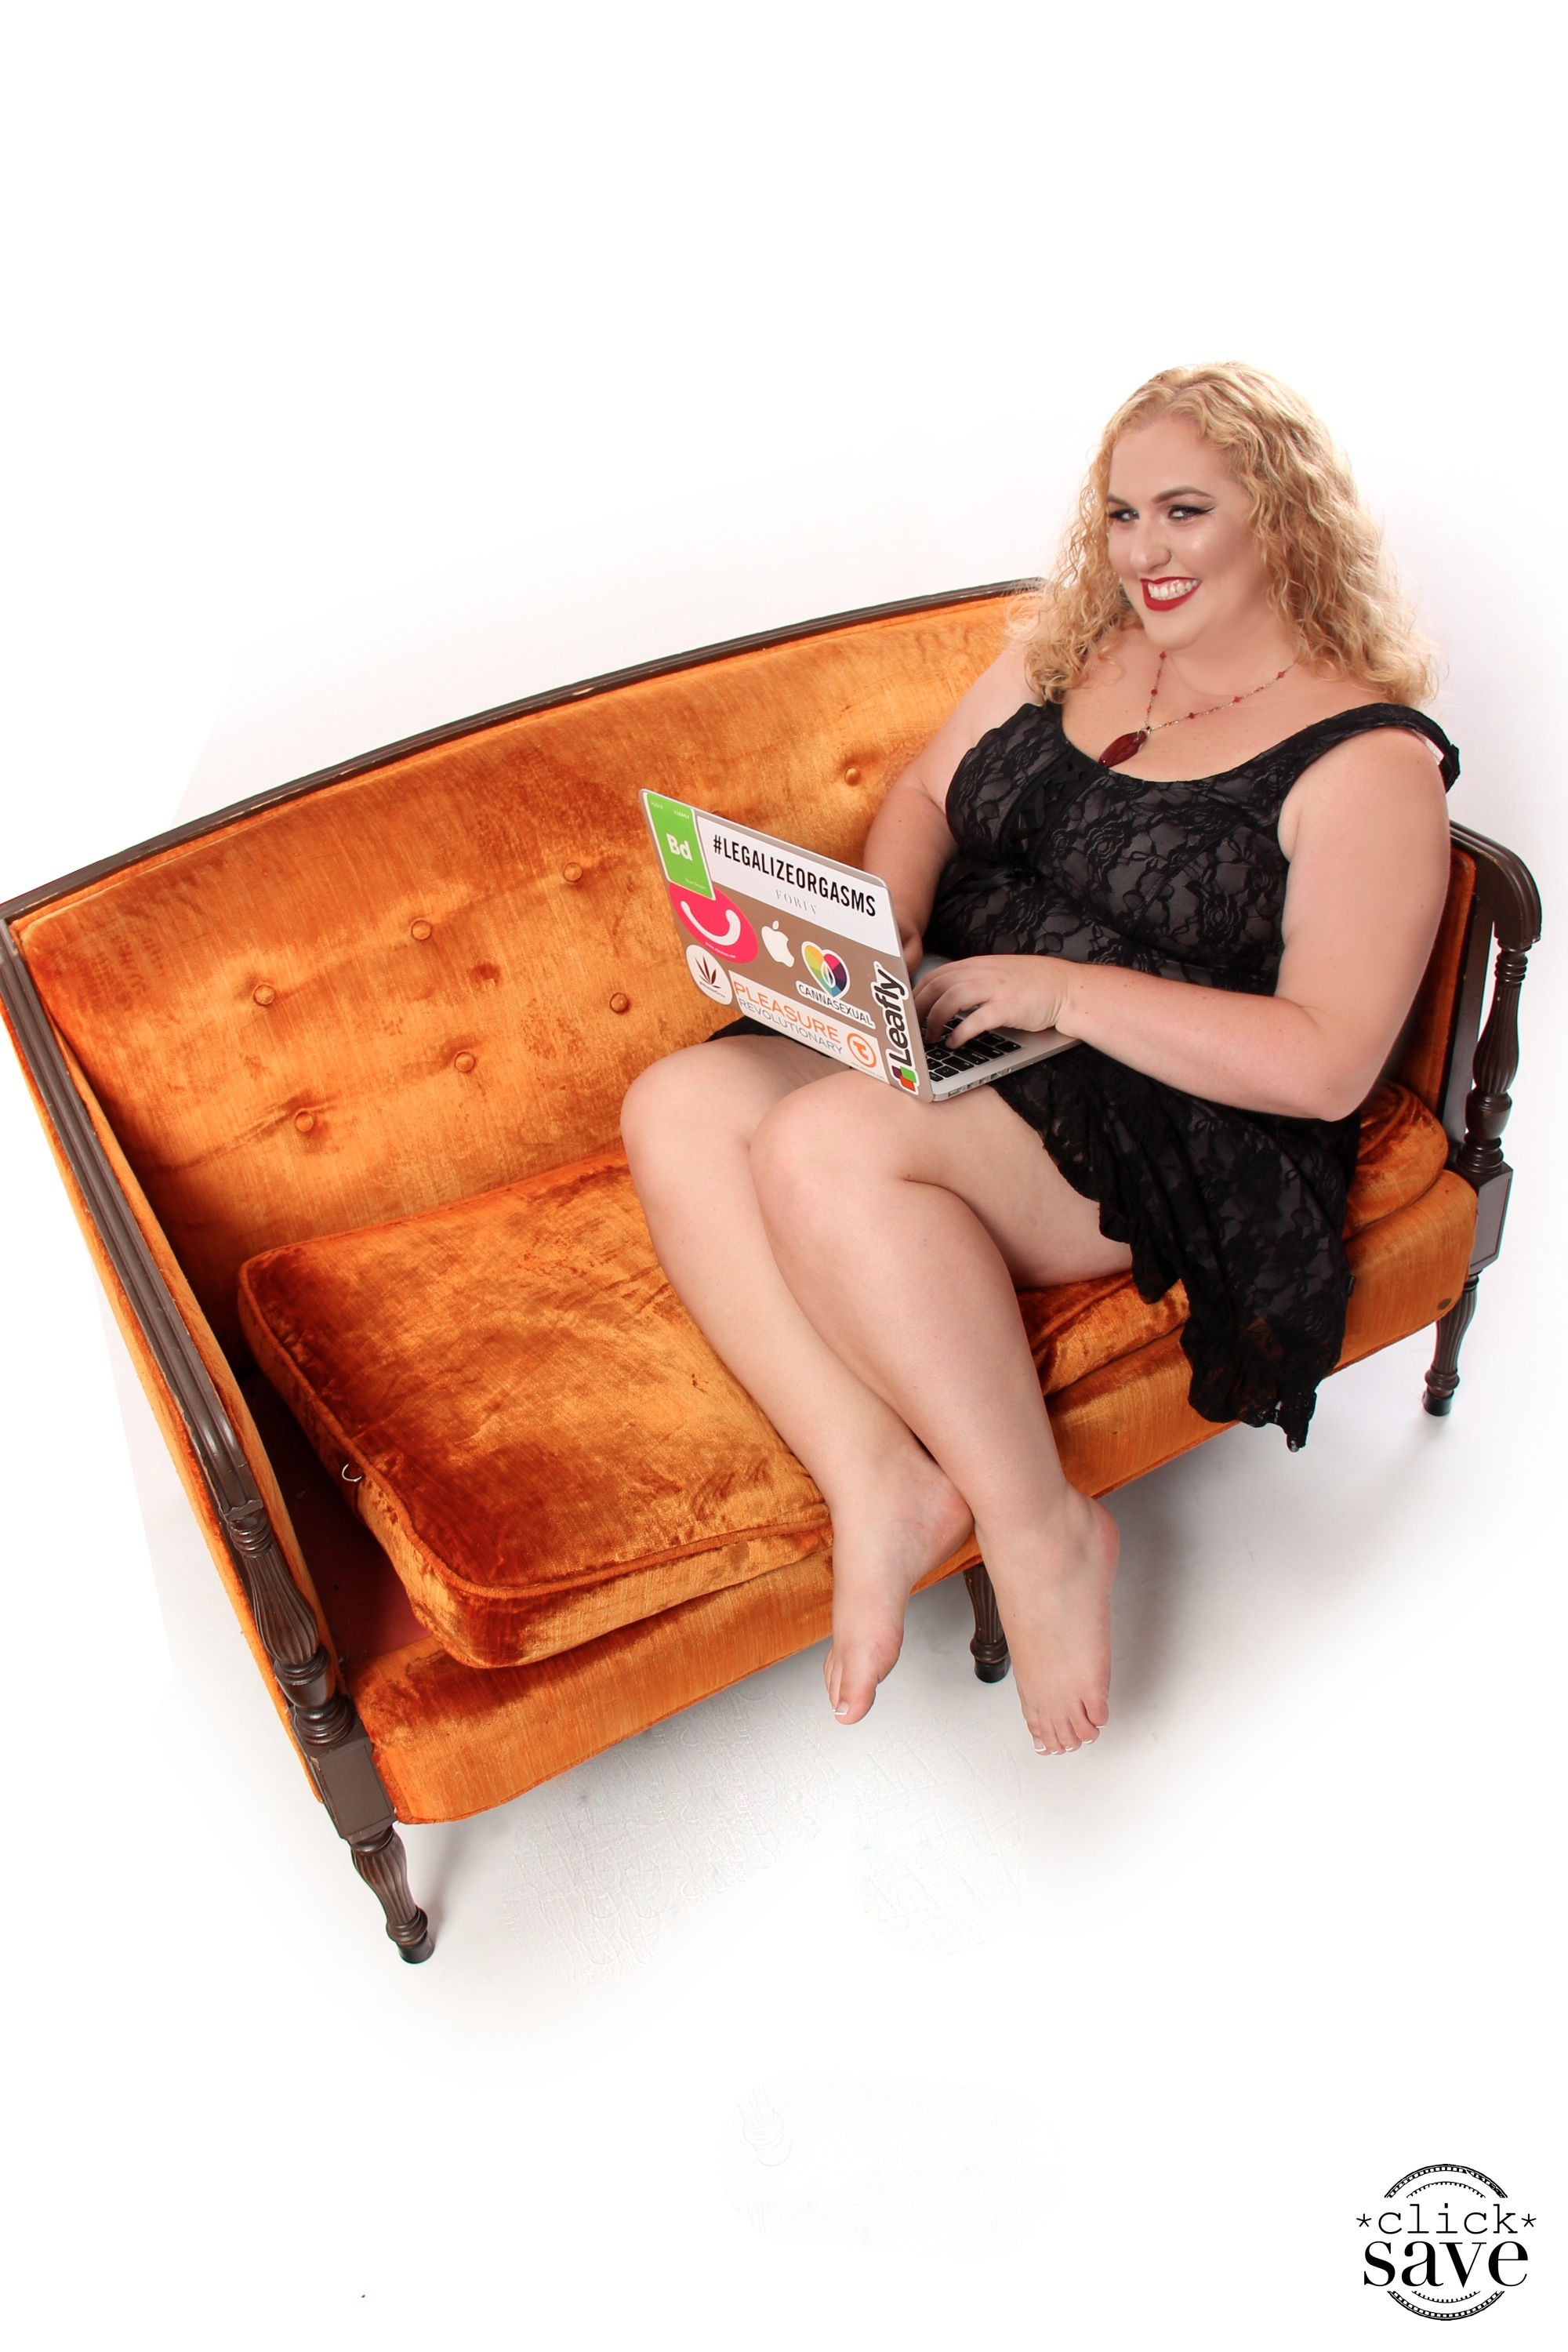 Image of Ashley on orange couch with laptop